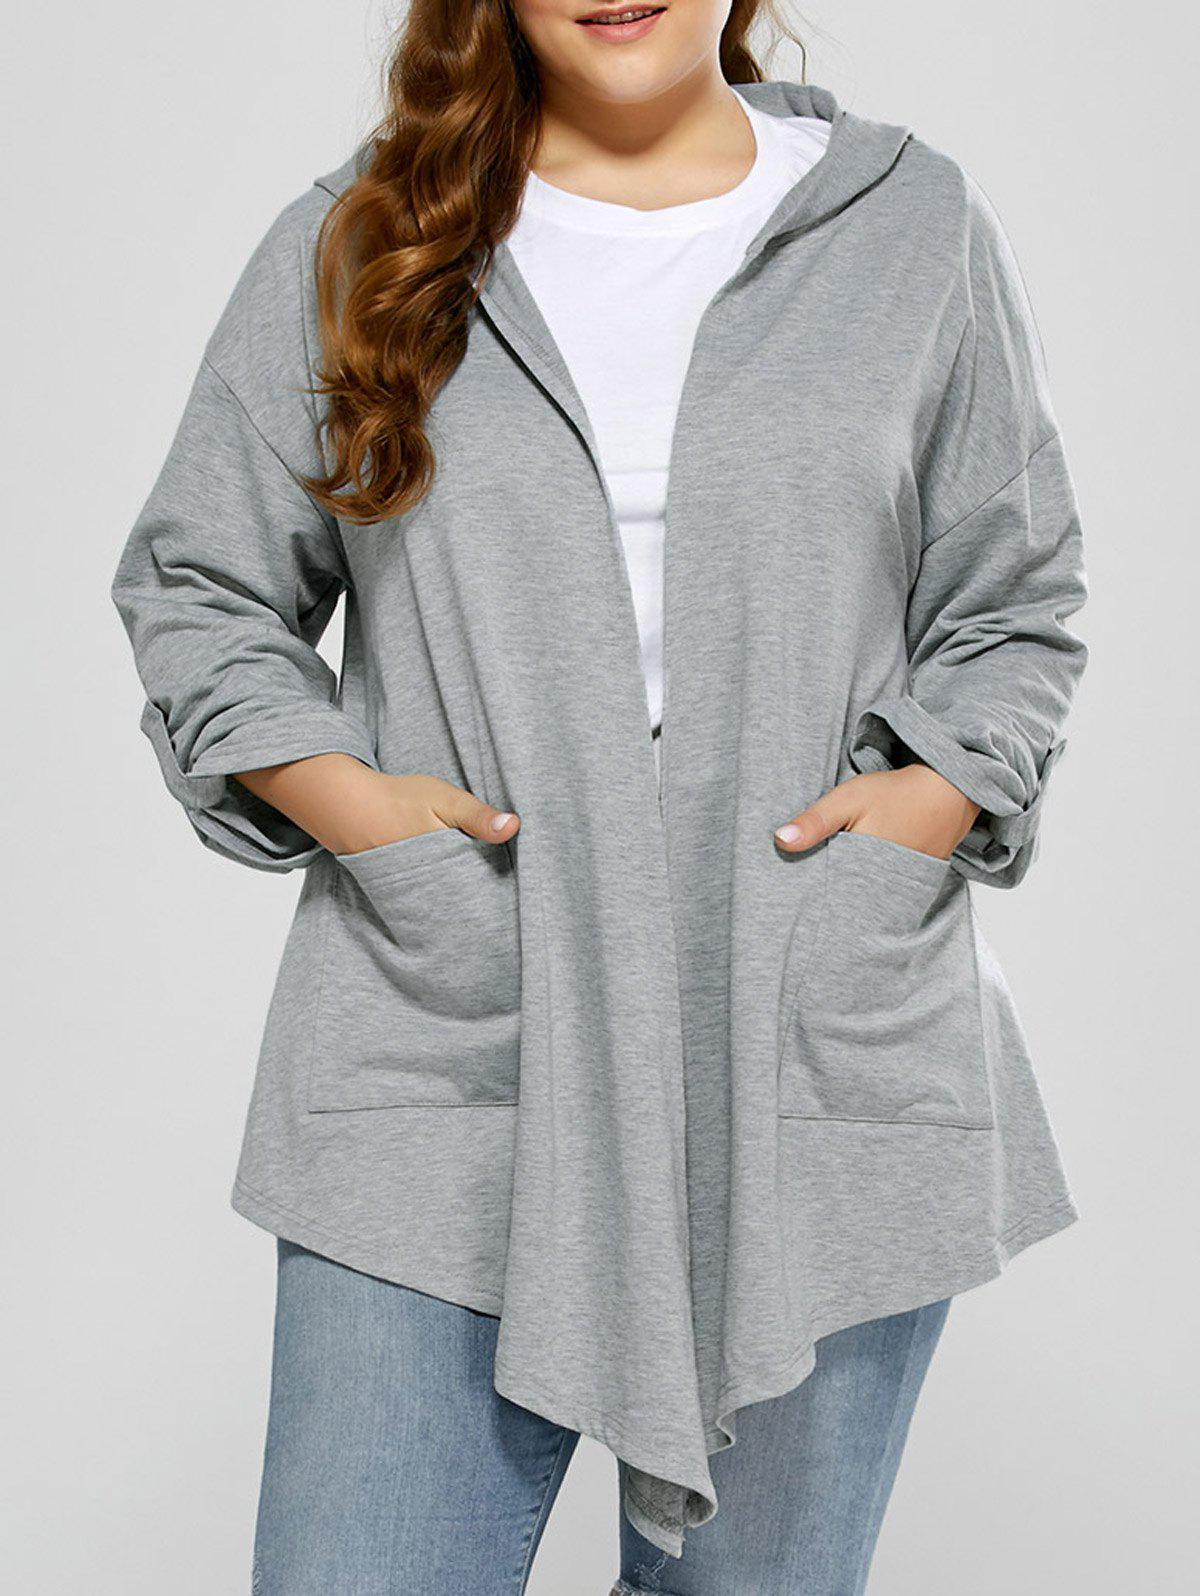 Buy Hooded Asymmetrical Plus Size Cardigan Pocket LIGHT GRAY